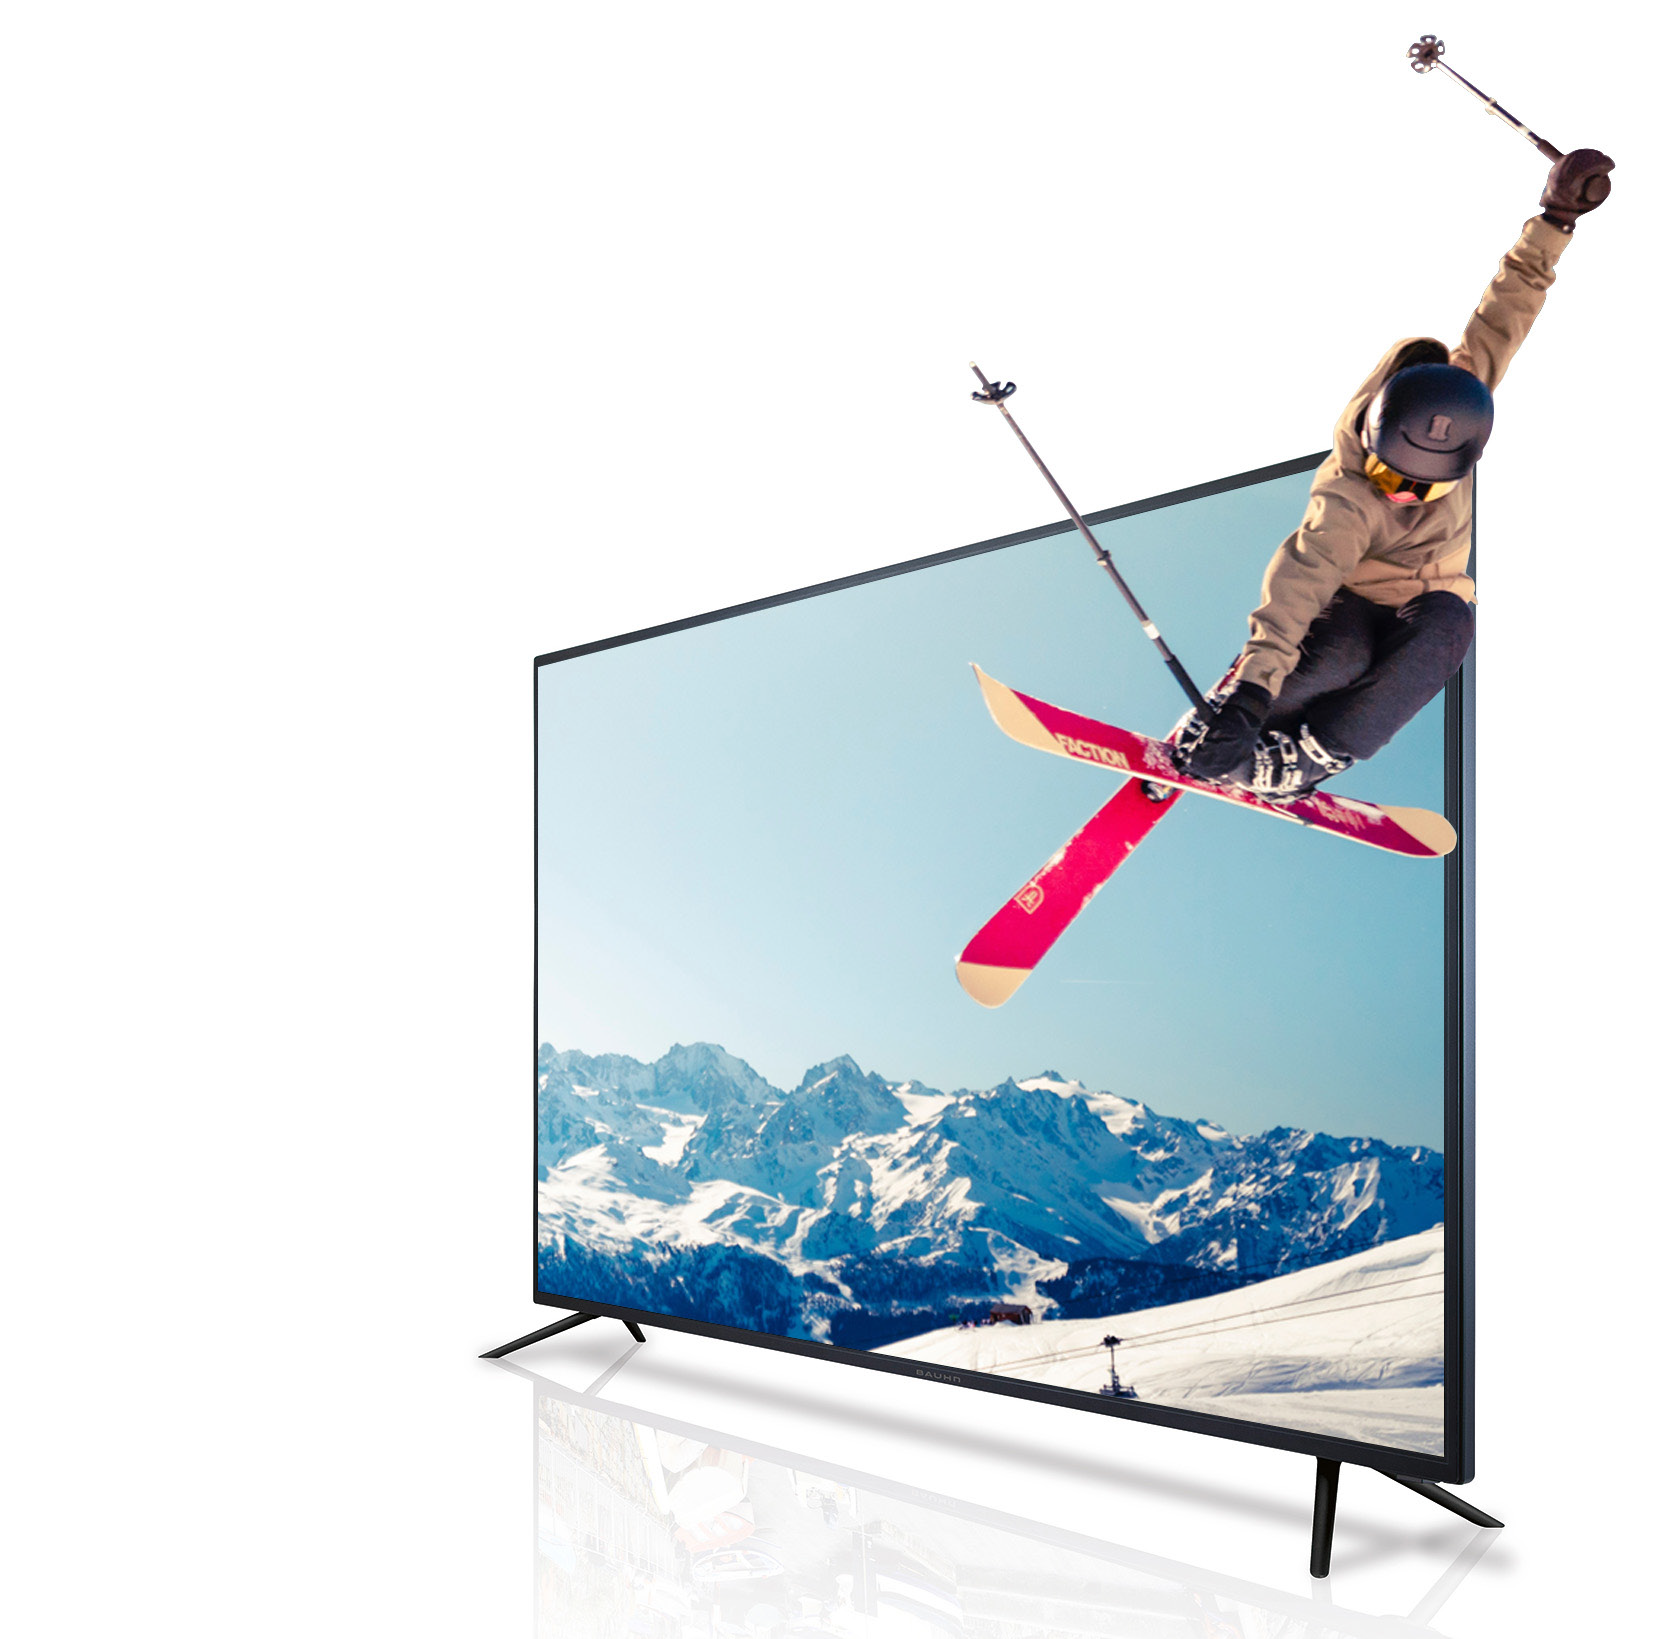 bauhn 55 SmartHouse Best Of The Best Awards 2020: TVs And Streaming